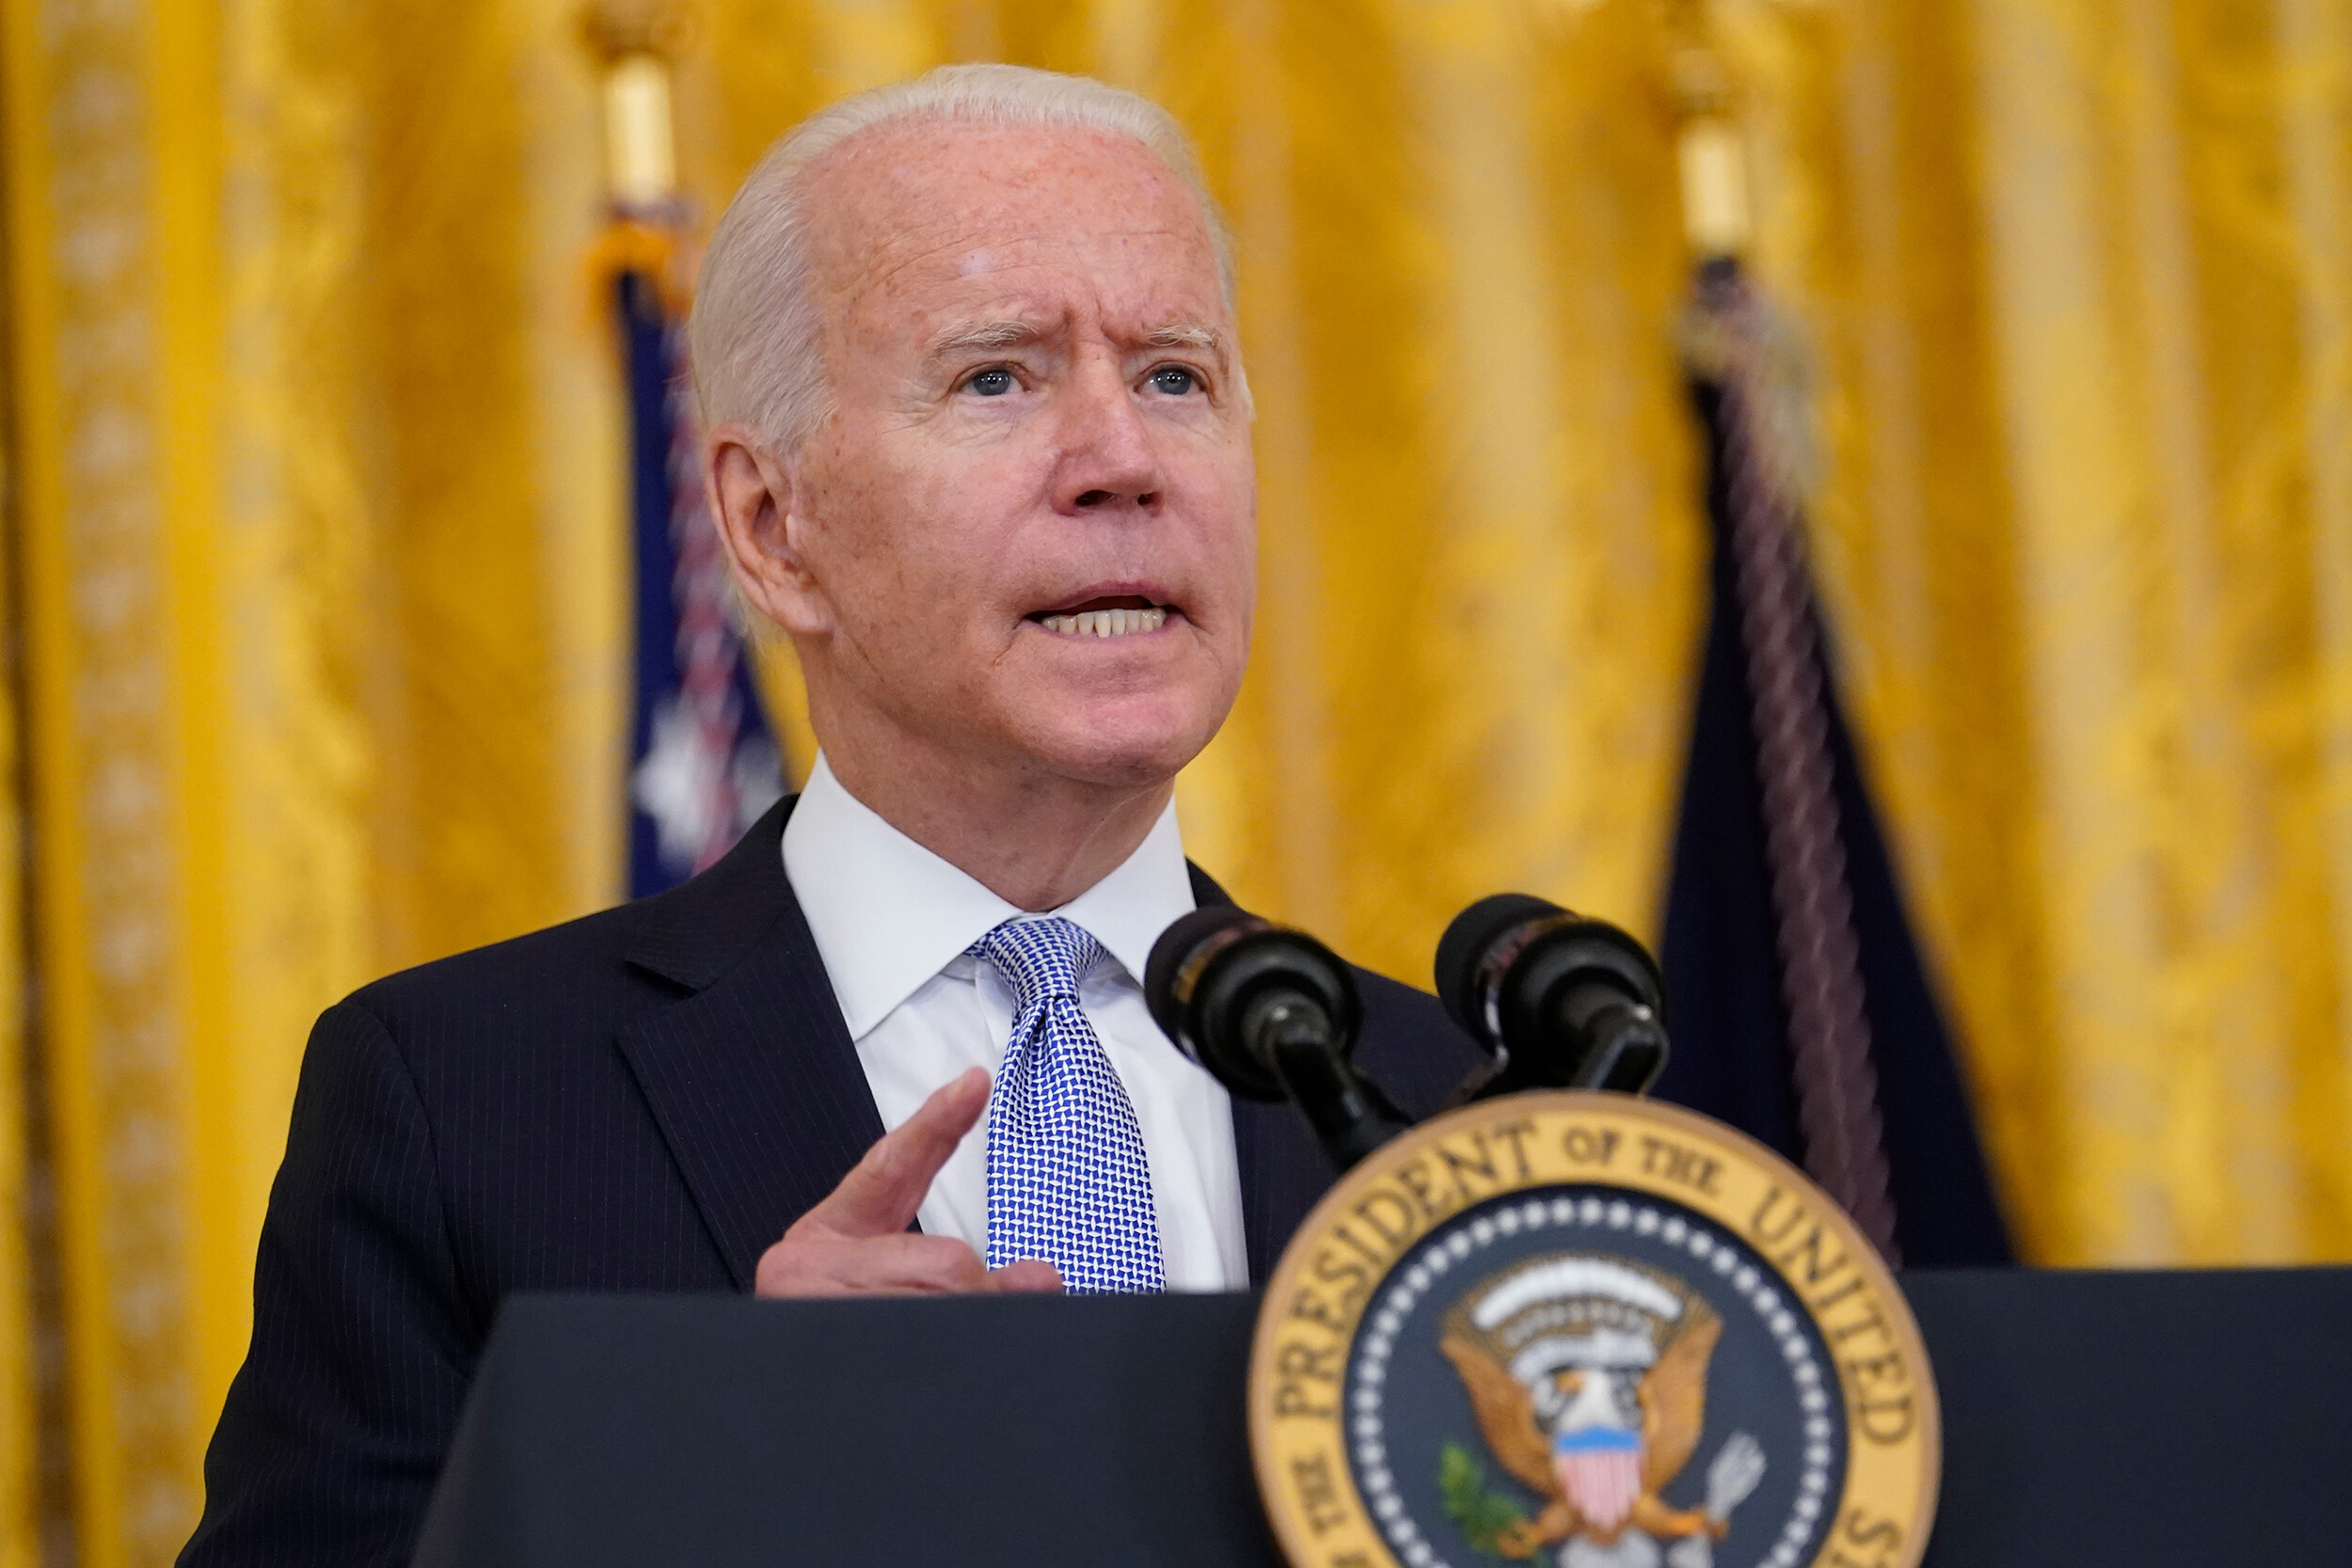 Biden to meet with CEOs requiring their employees get vaccinated, urge others to follow their lead